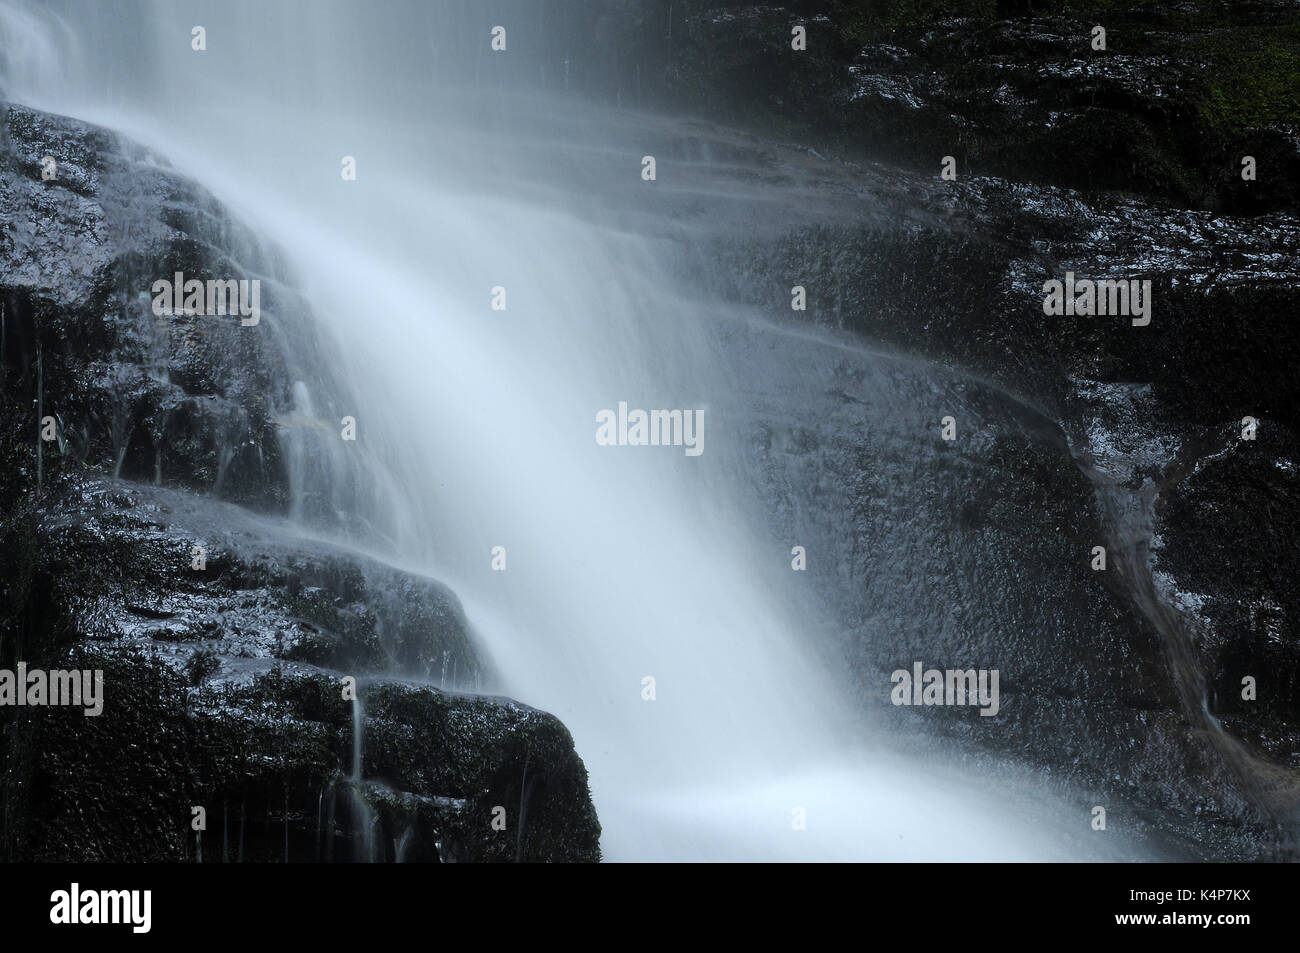 The tallest of the many falls on the Nant Bwrefwr. - Stock Image